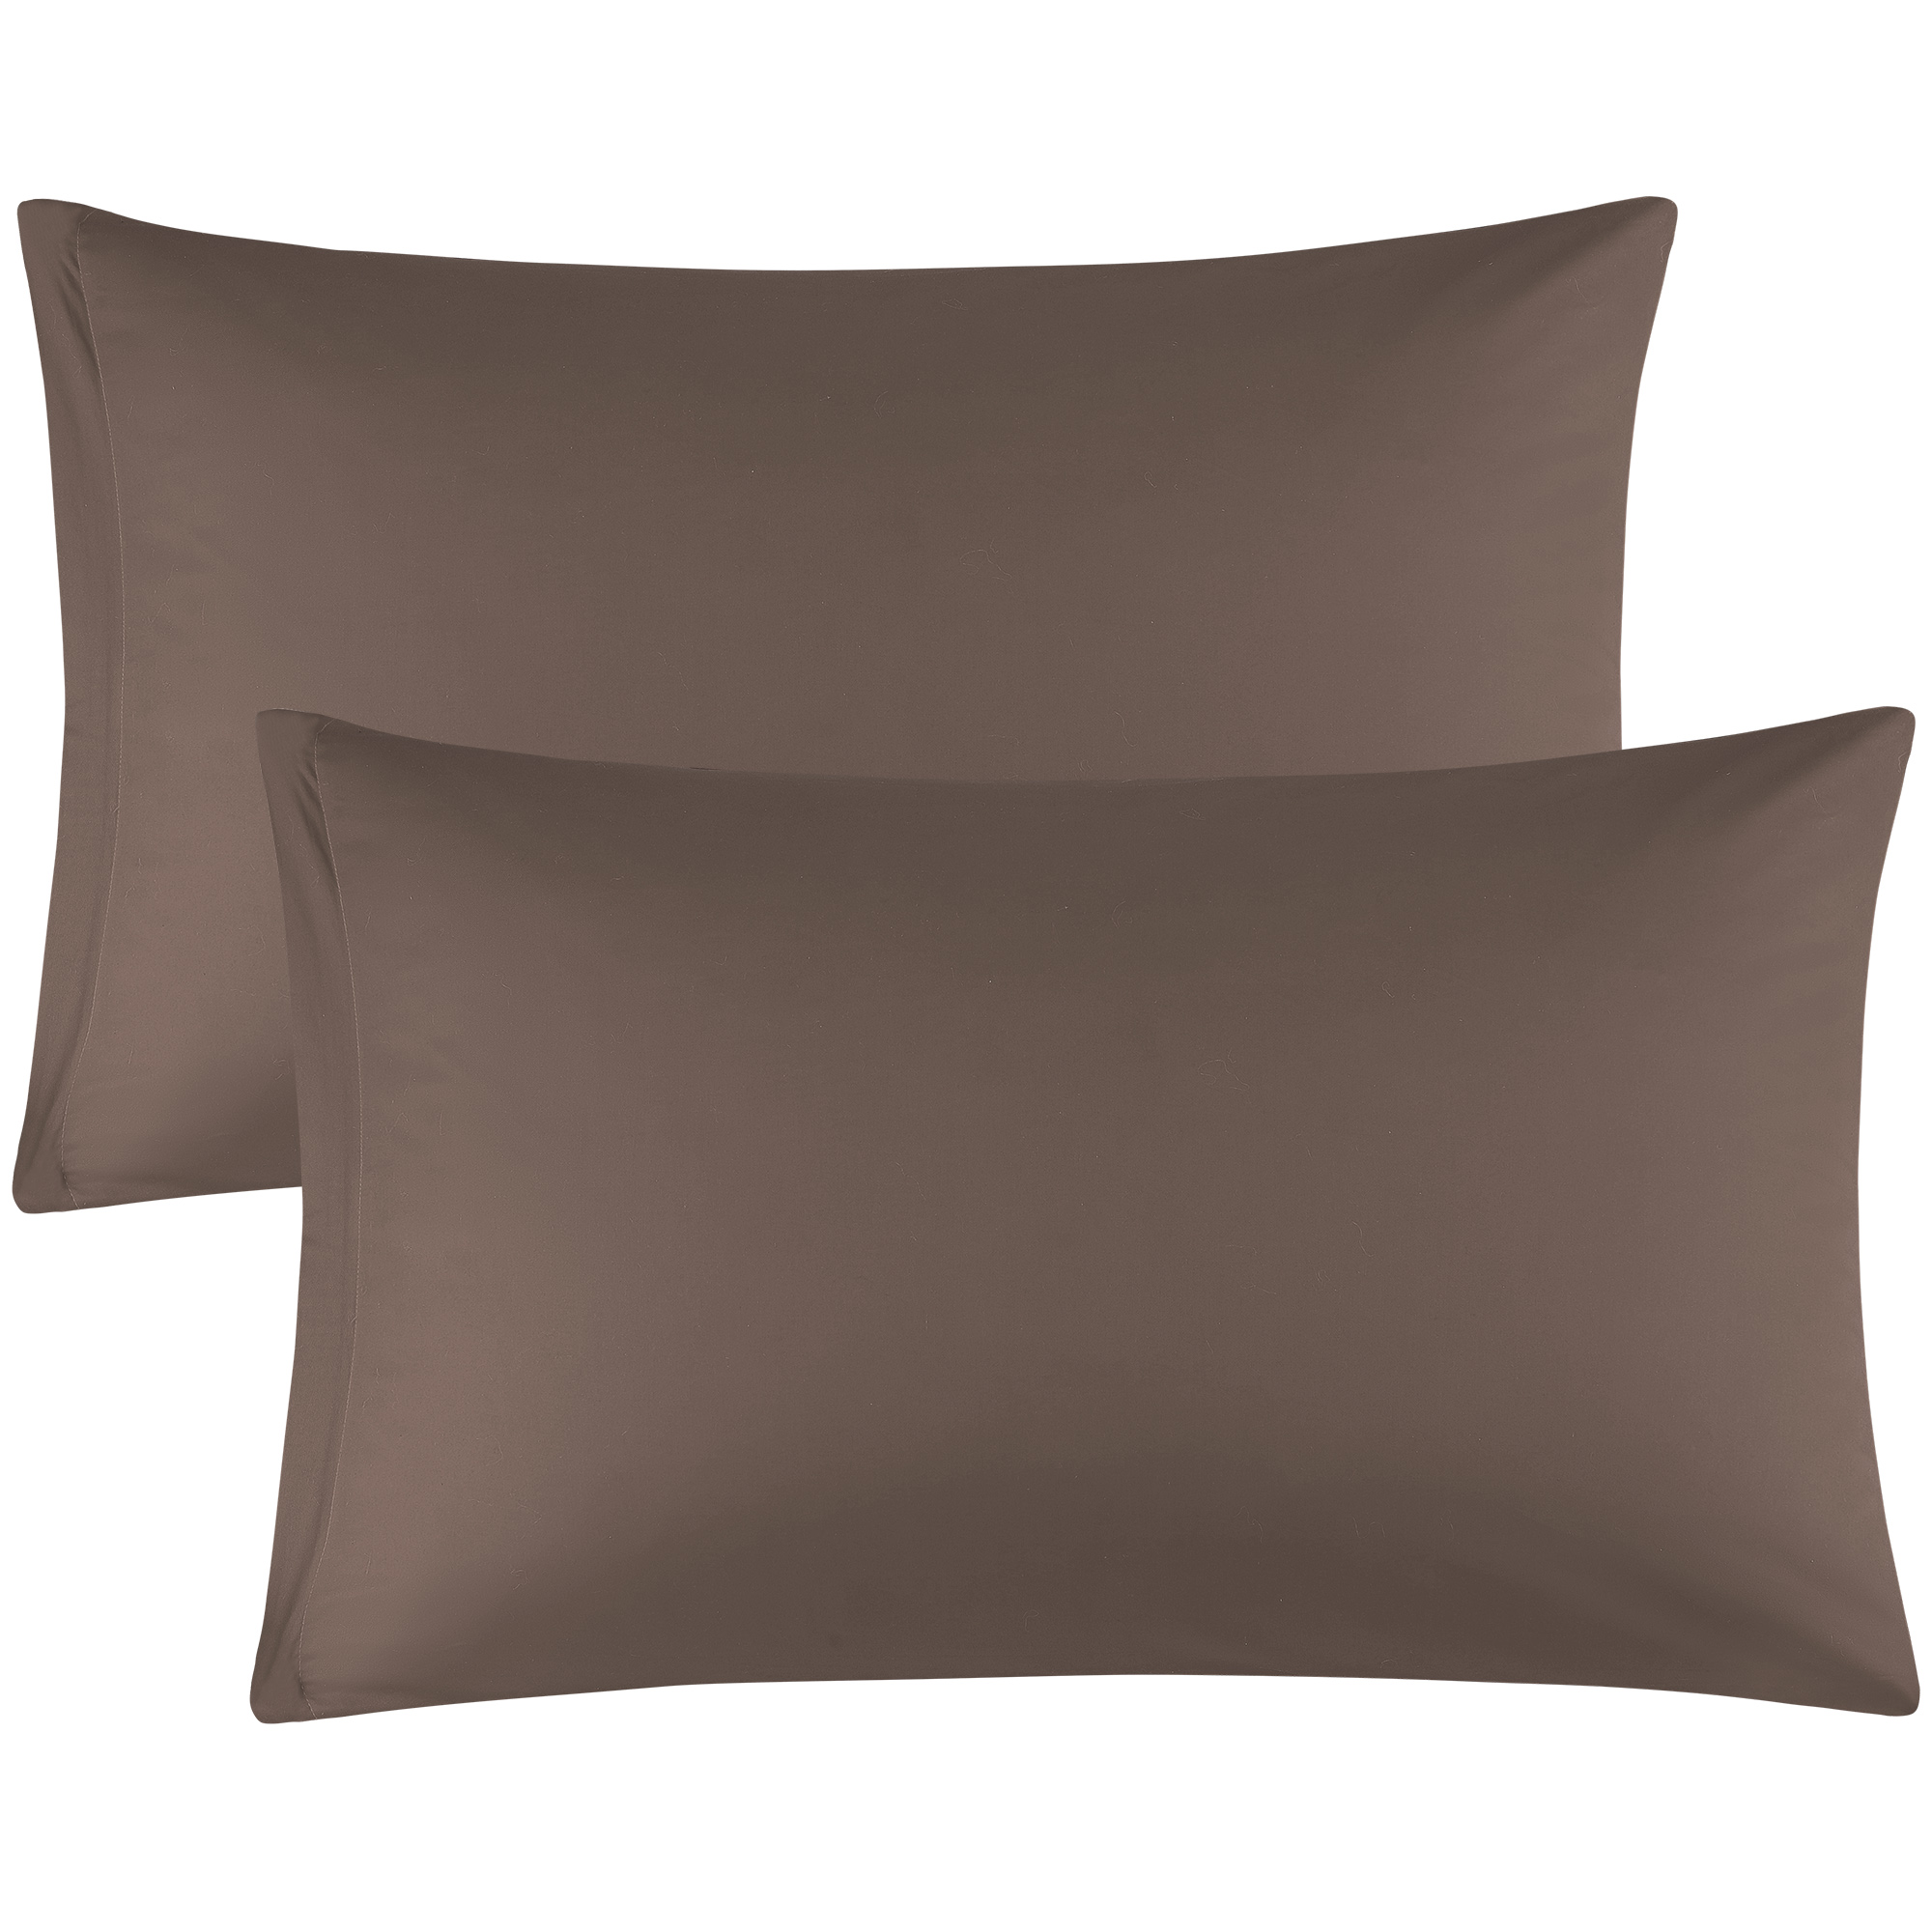 Zippered Pillowcases Covers Egyptian Cotton 2-Pack (20 x 26 Inch, Coffee Color)